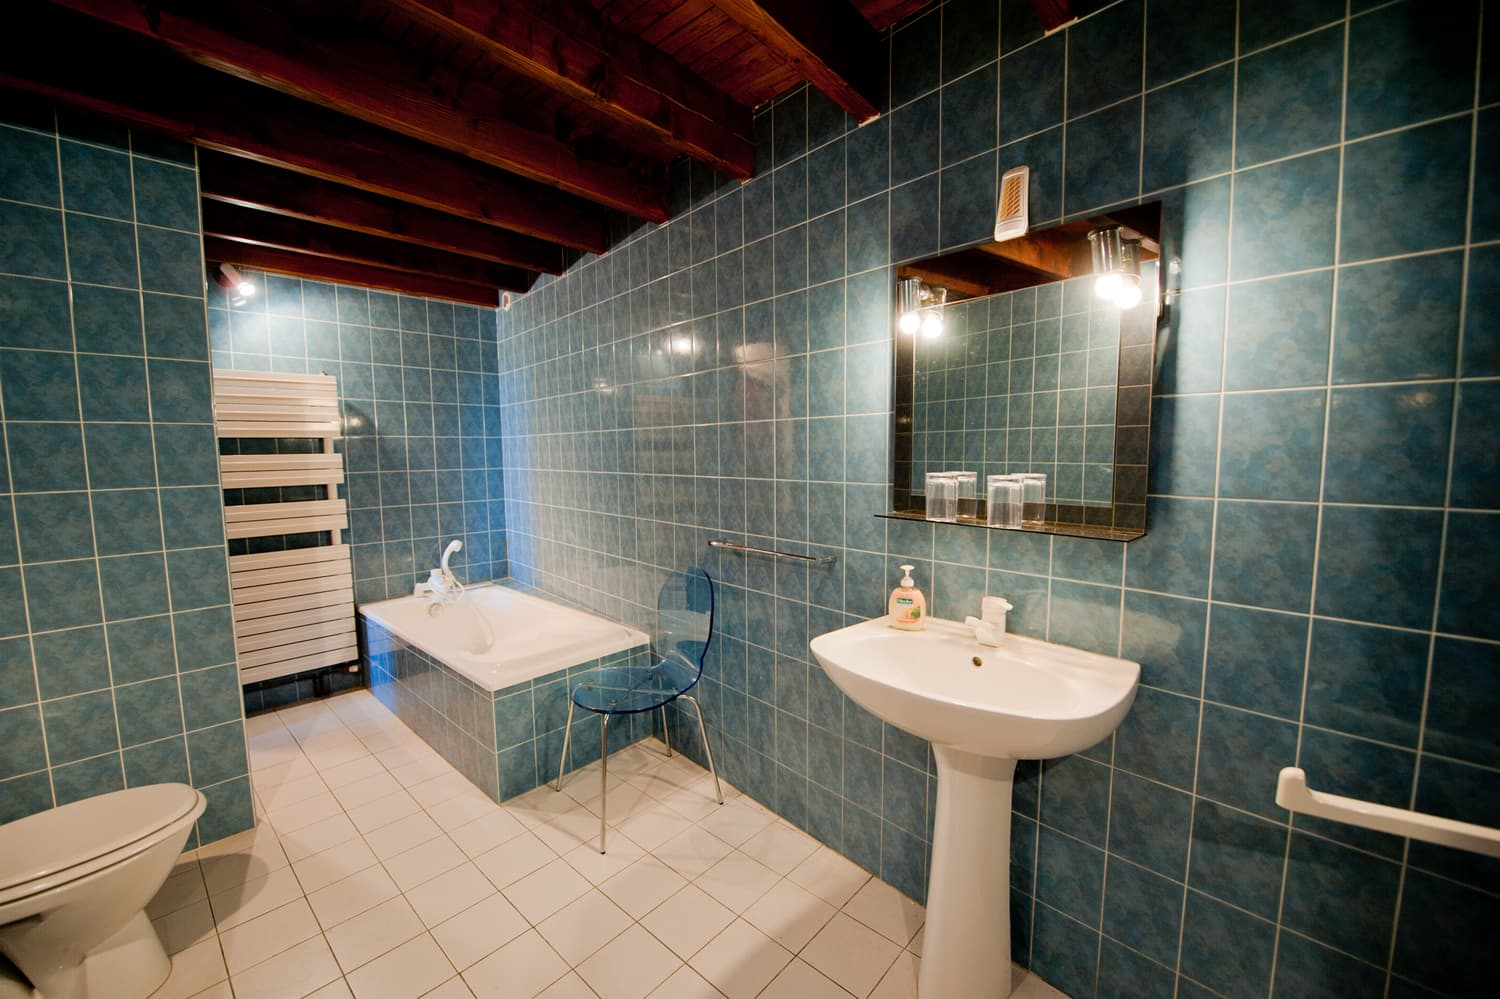 Bathroom in South West France self-catering home